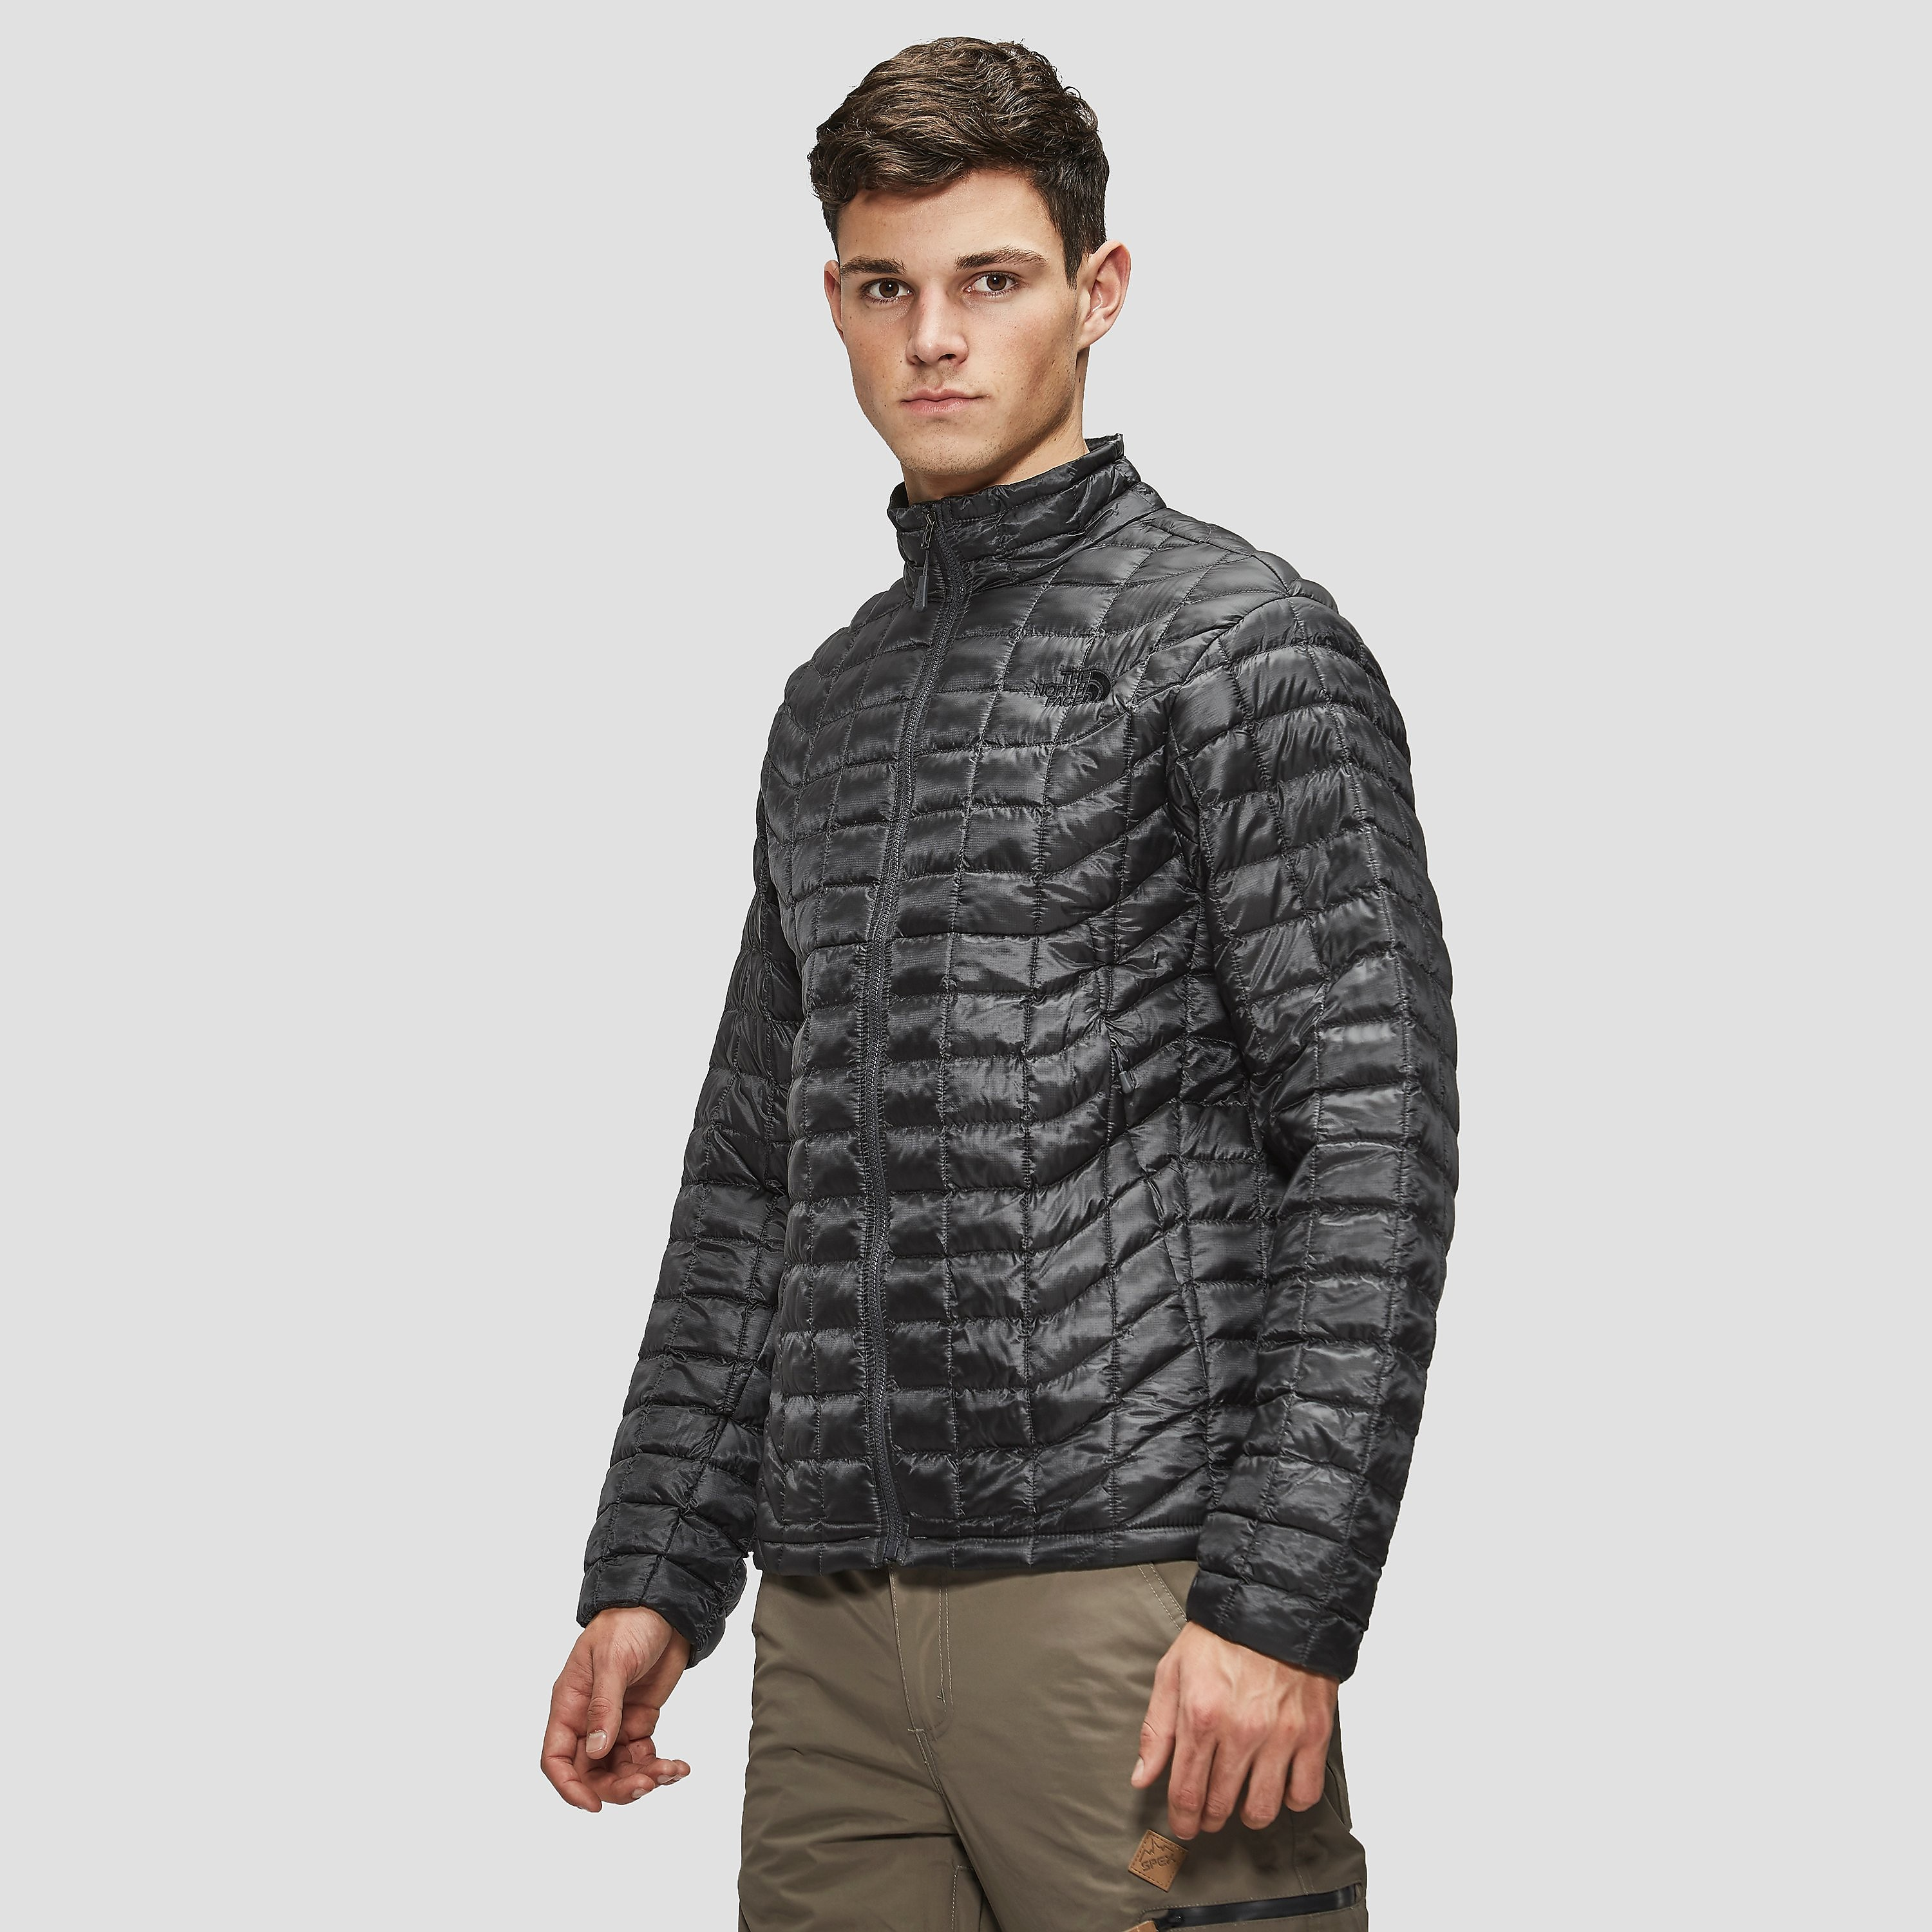 THE NORTH FACE THERMOBALL JAS